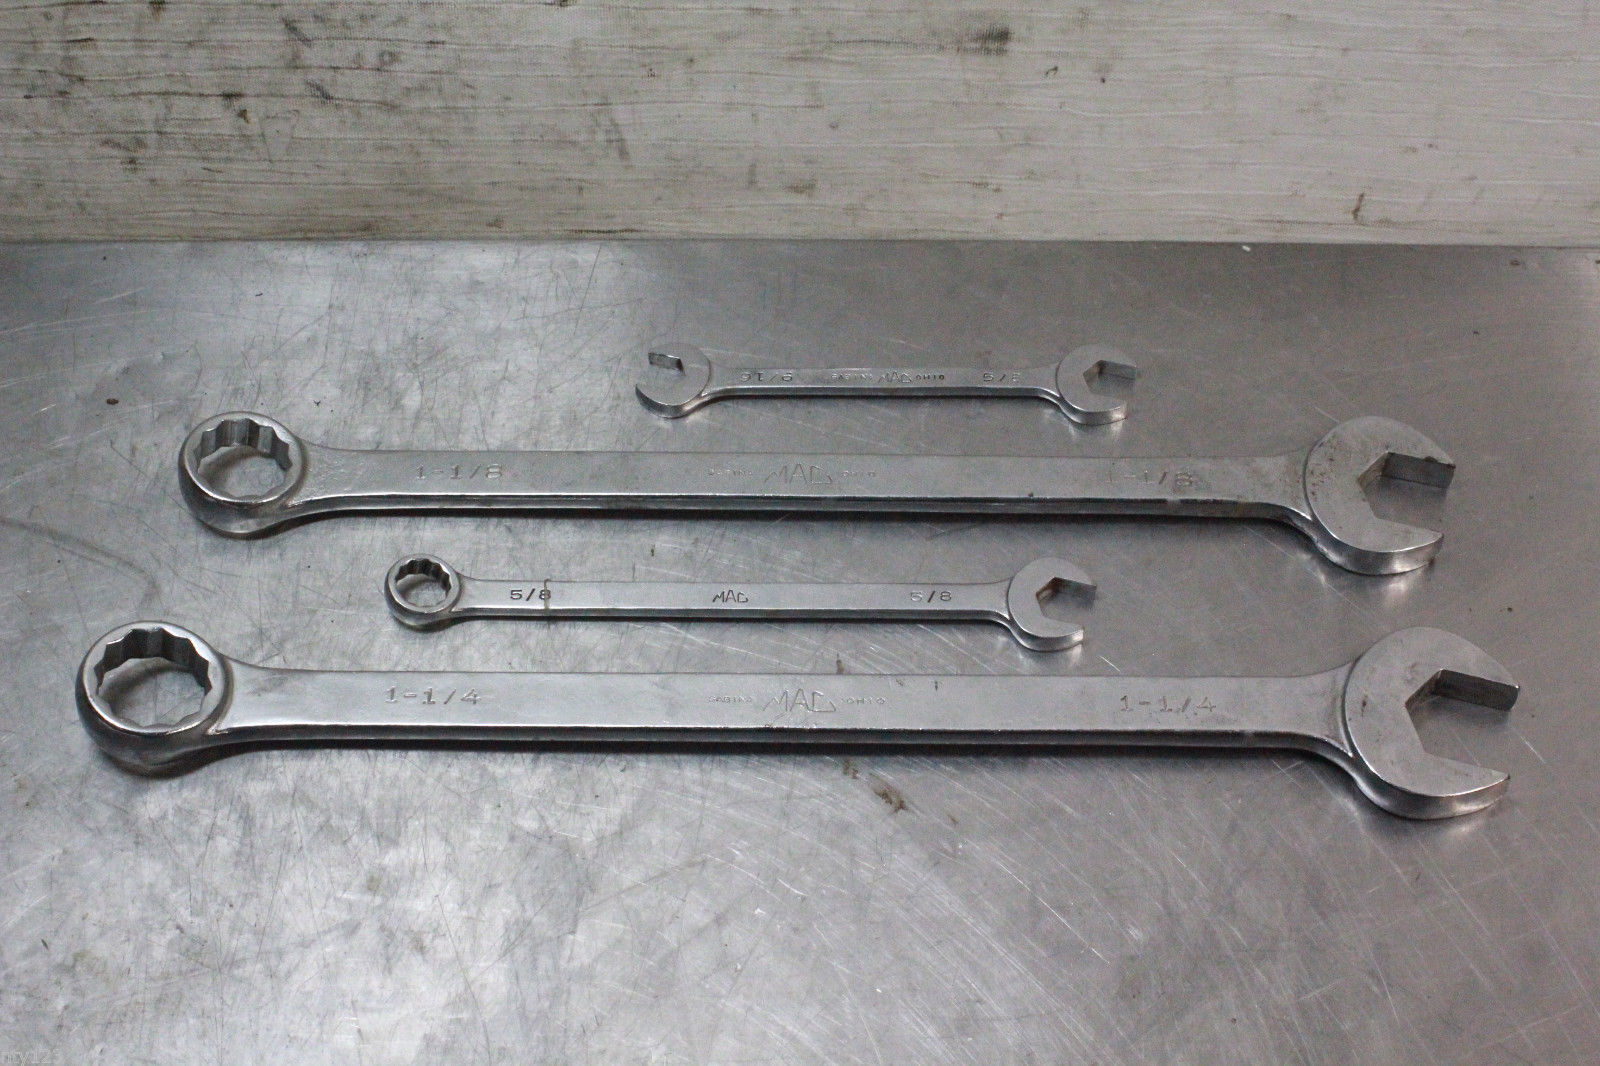 4-PIECE MAC WRENCH SET